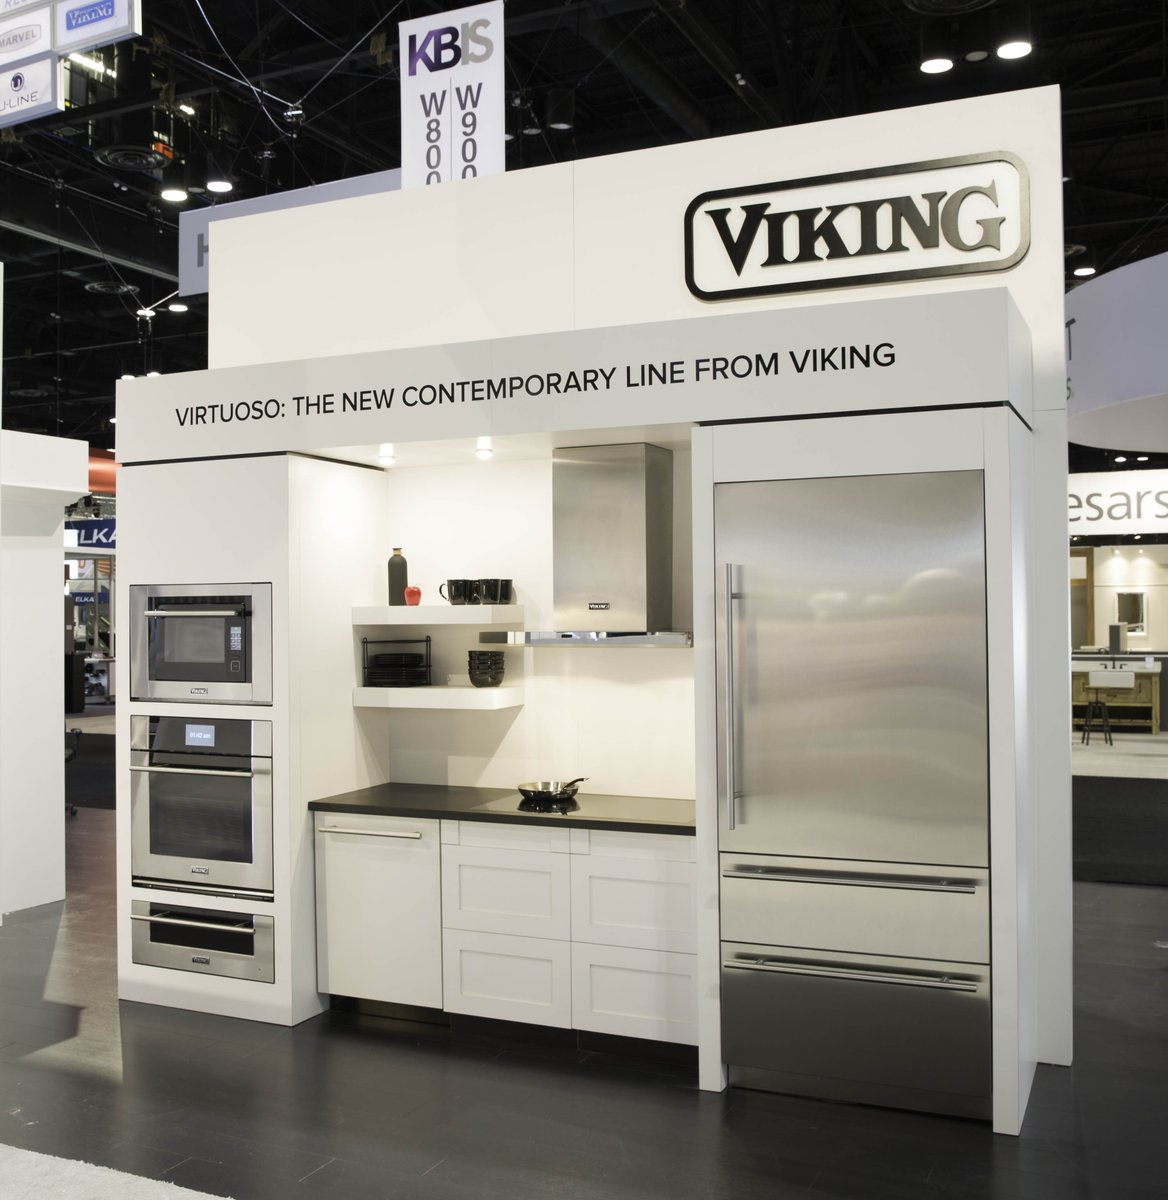 Have you seen #VikingVirtuoso? It's a whole new #contemporary product line from #vikingrange! https://t.co/TQgDcFISoX